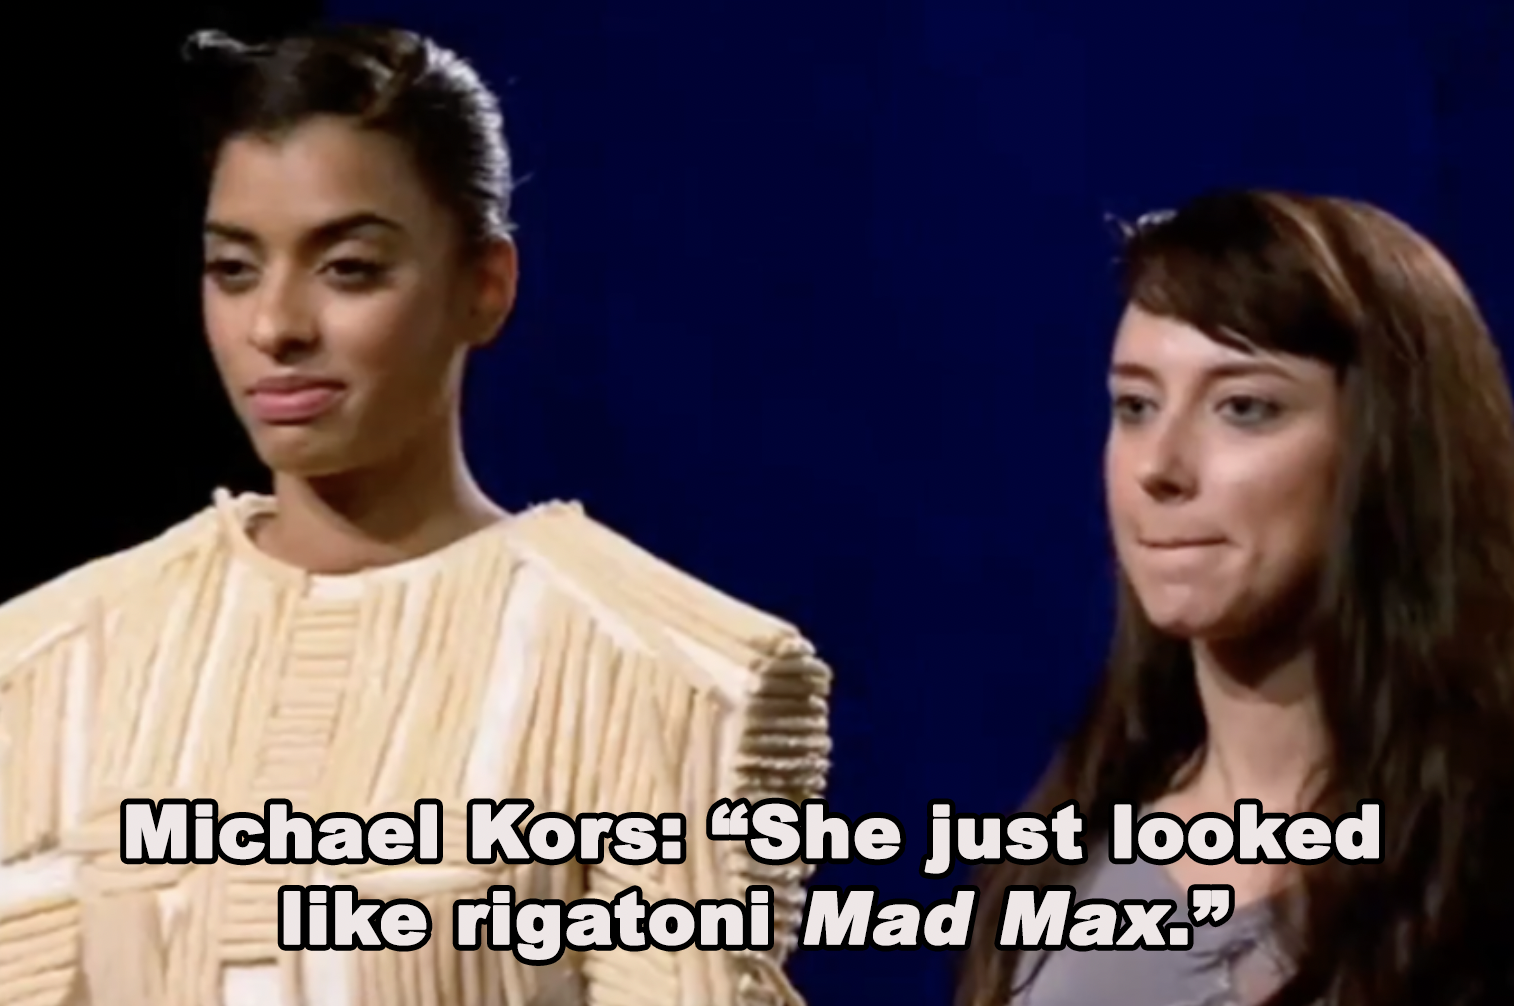 """Michael Kors calls a look made from candy """"rigatoni Mad Max"""""""